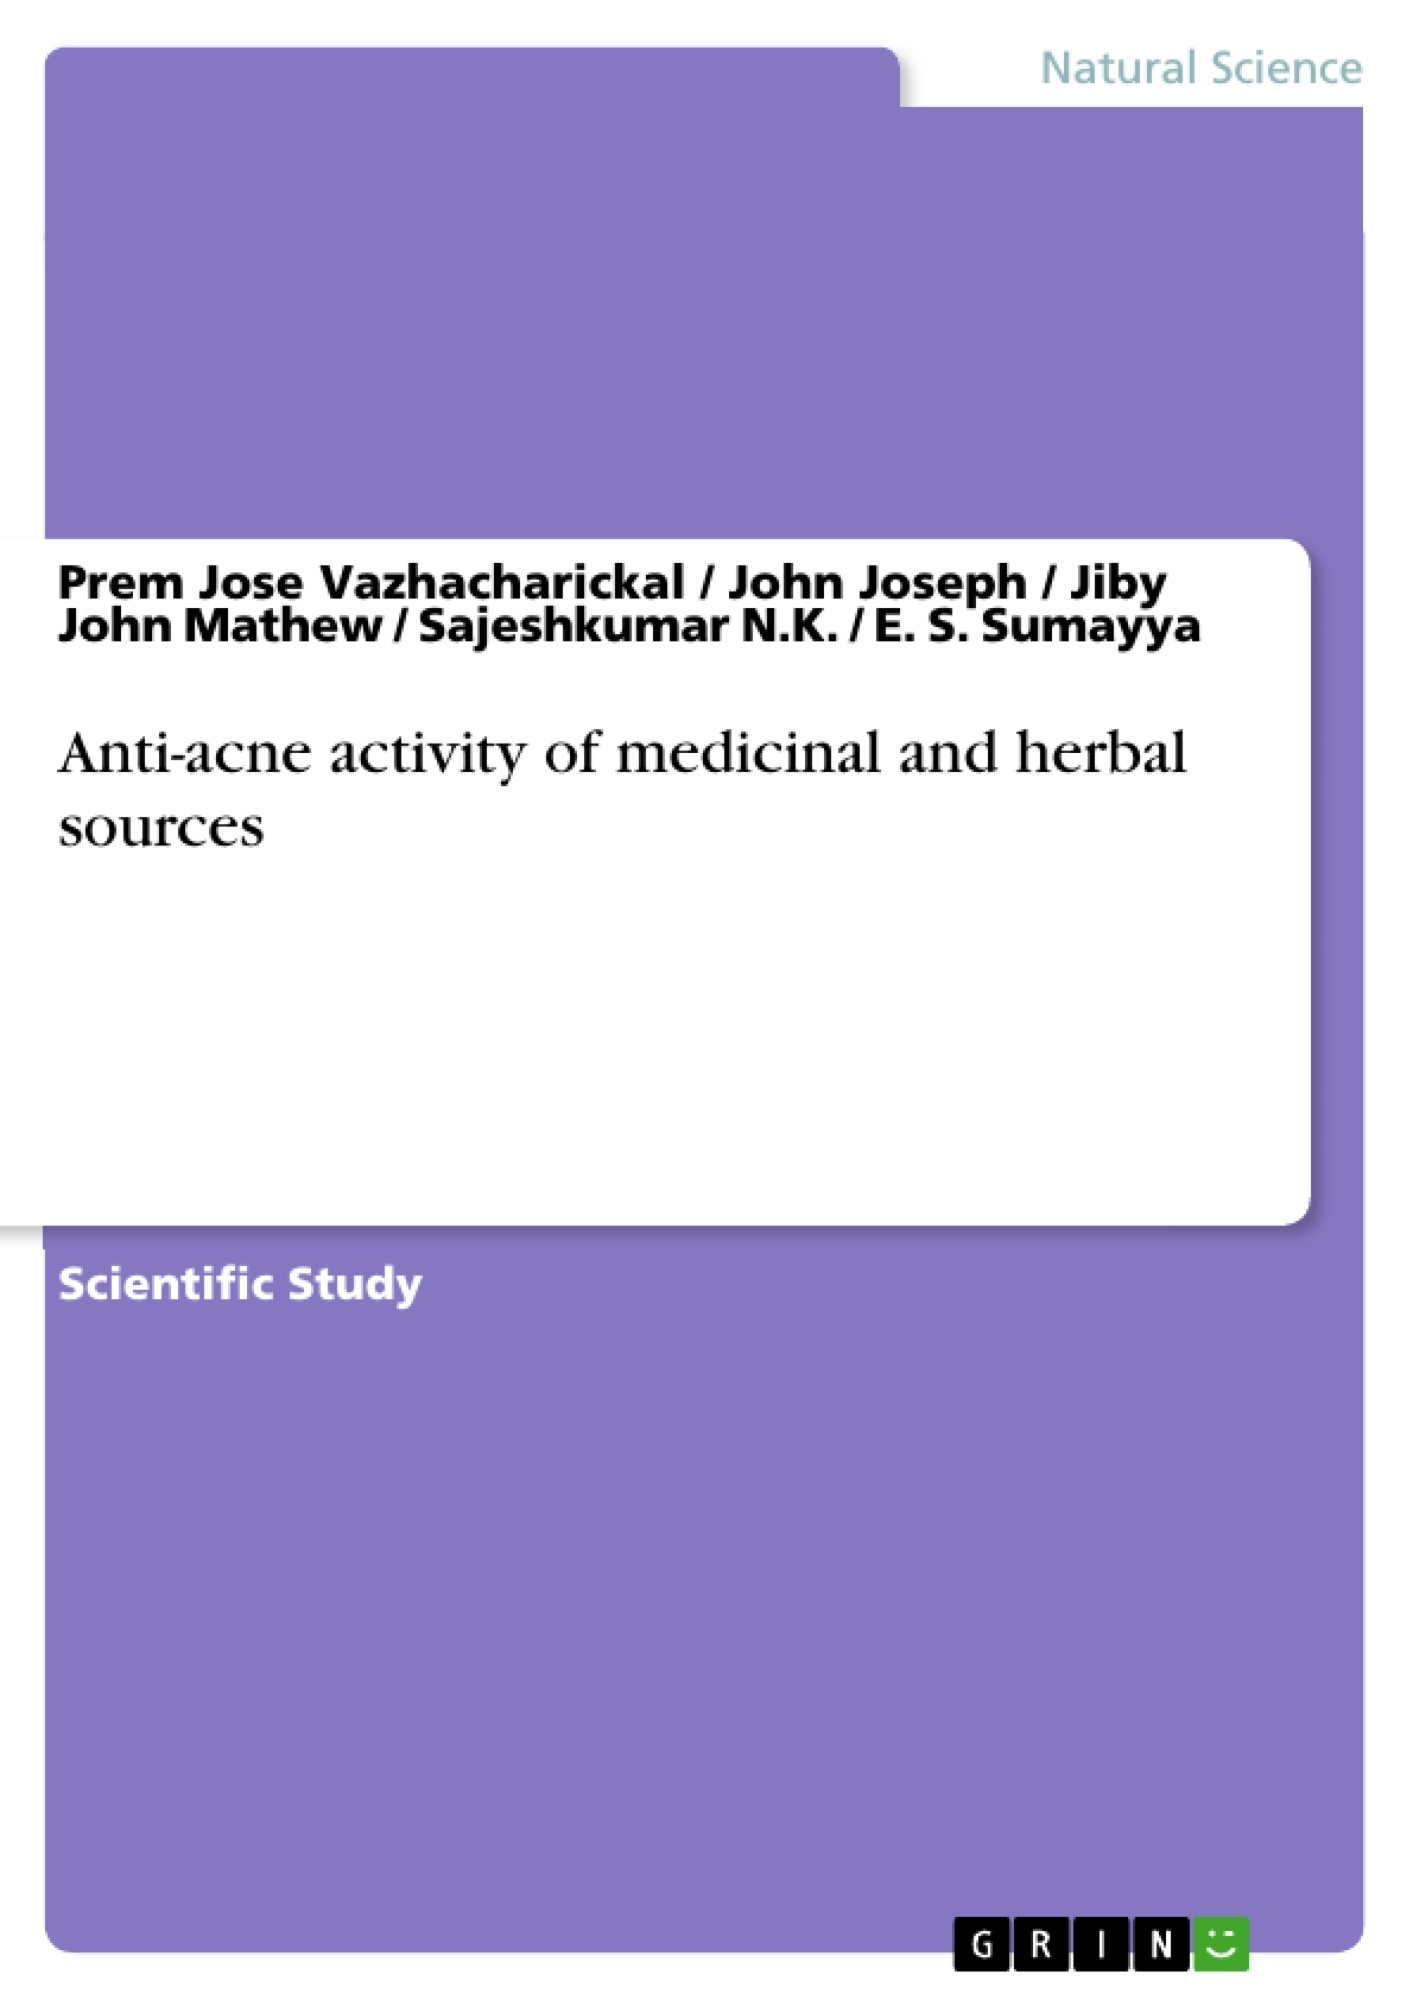 Title: Anti-acne activity of medicinal and herbal sources